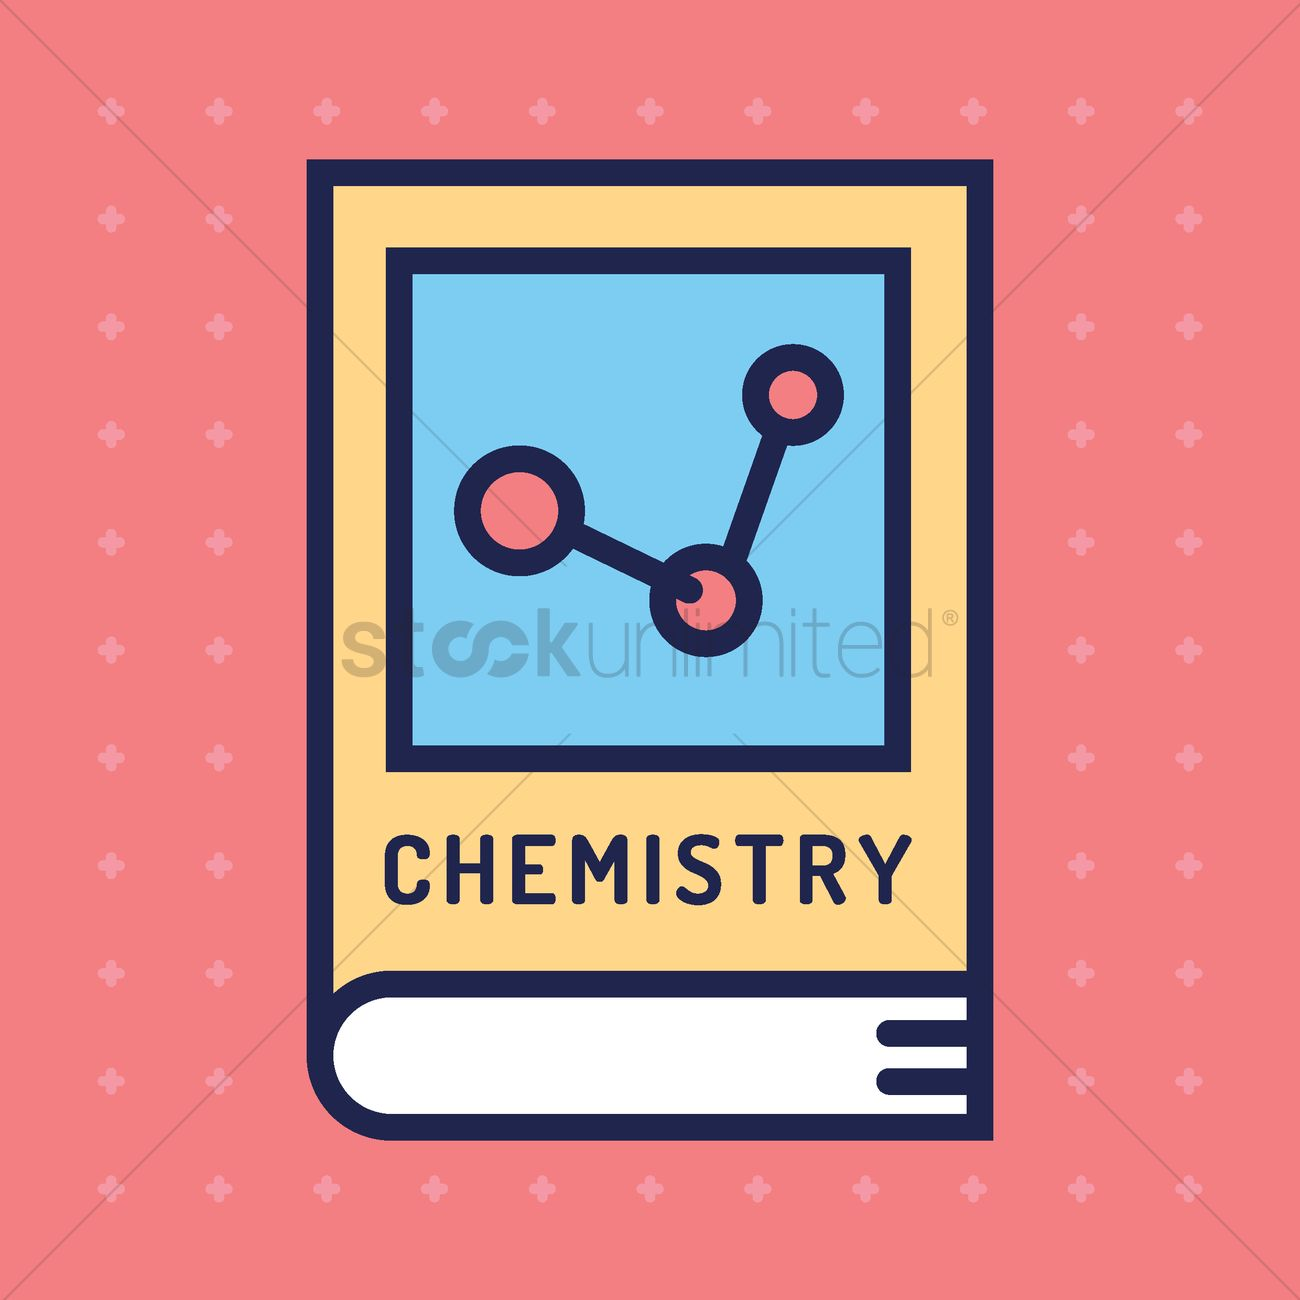 Free Chemistry textbook Vector Image - 1547909 | StockUnlimited